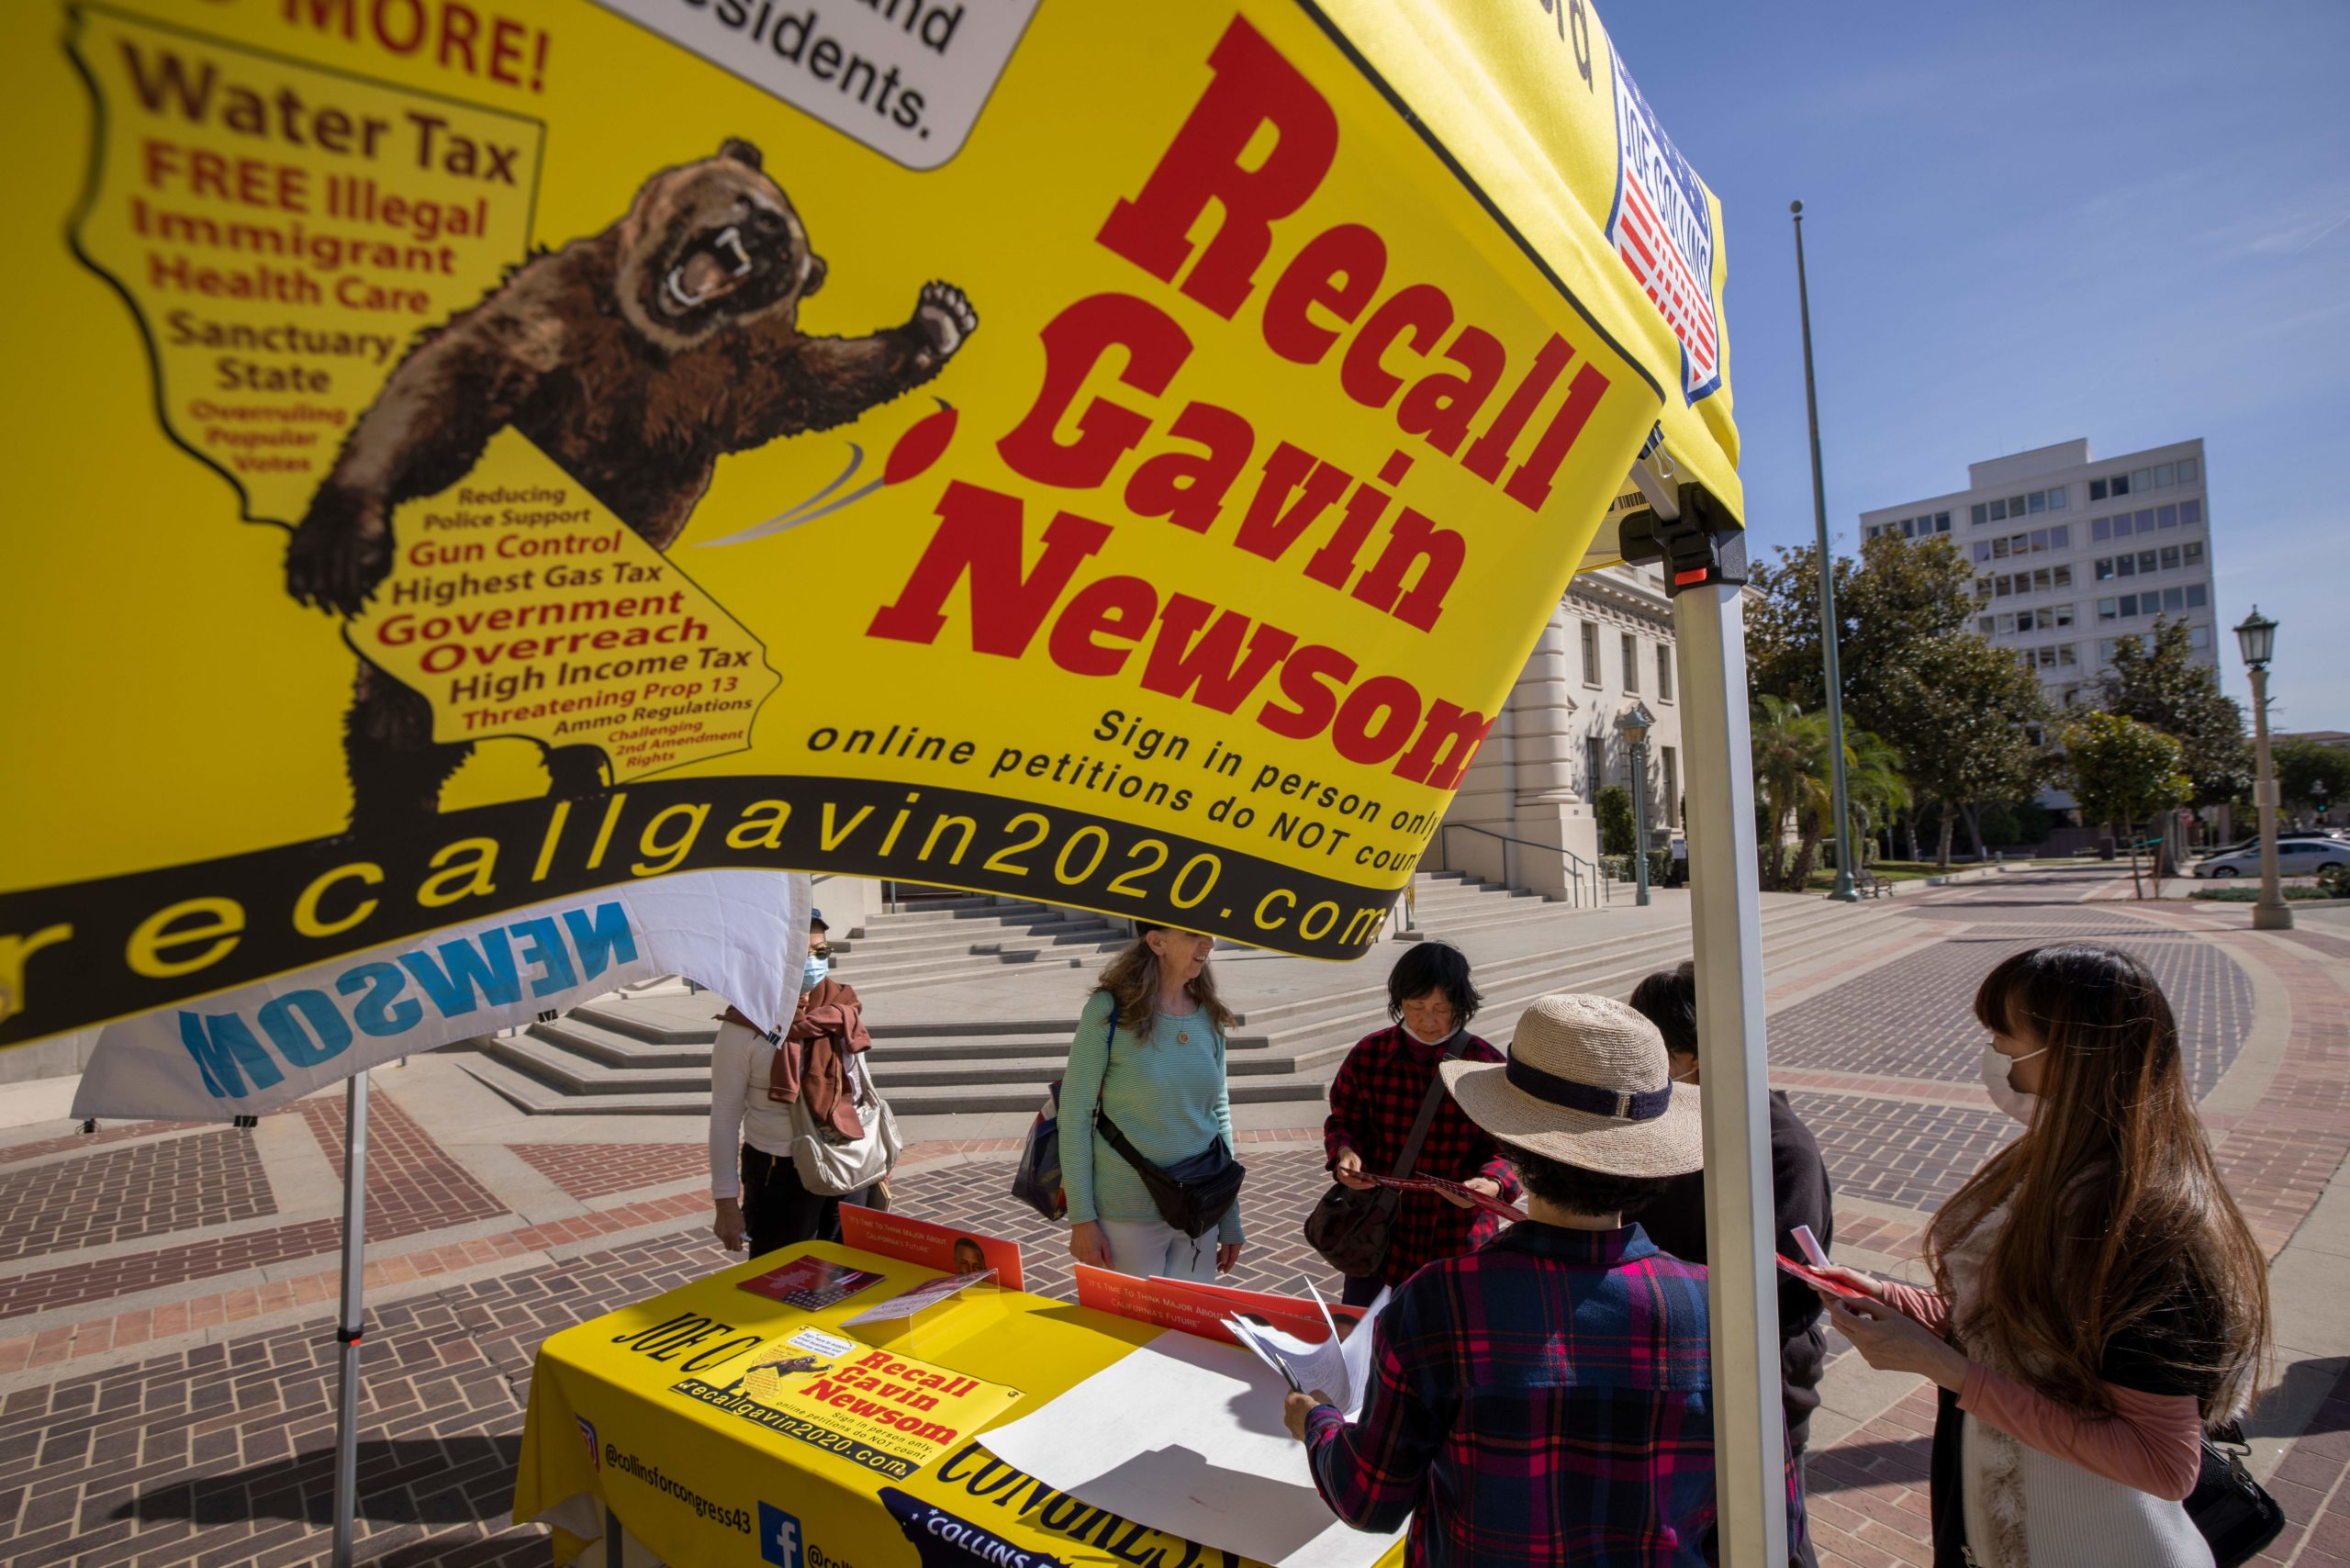 Conservative activists gather signatures in a recall effort against California Governor Gavin Newsom near Pasadena City Hall, in Pasadena, California on February 28, 2021. (DAVID MCNEW/AFP via Getty Images)